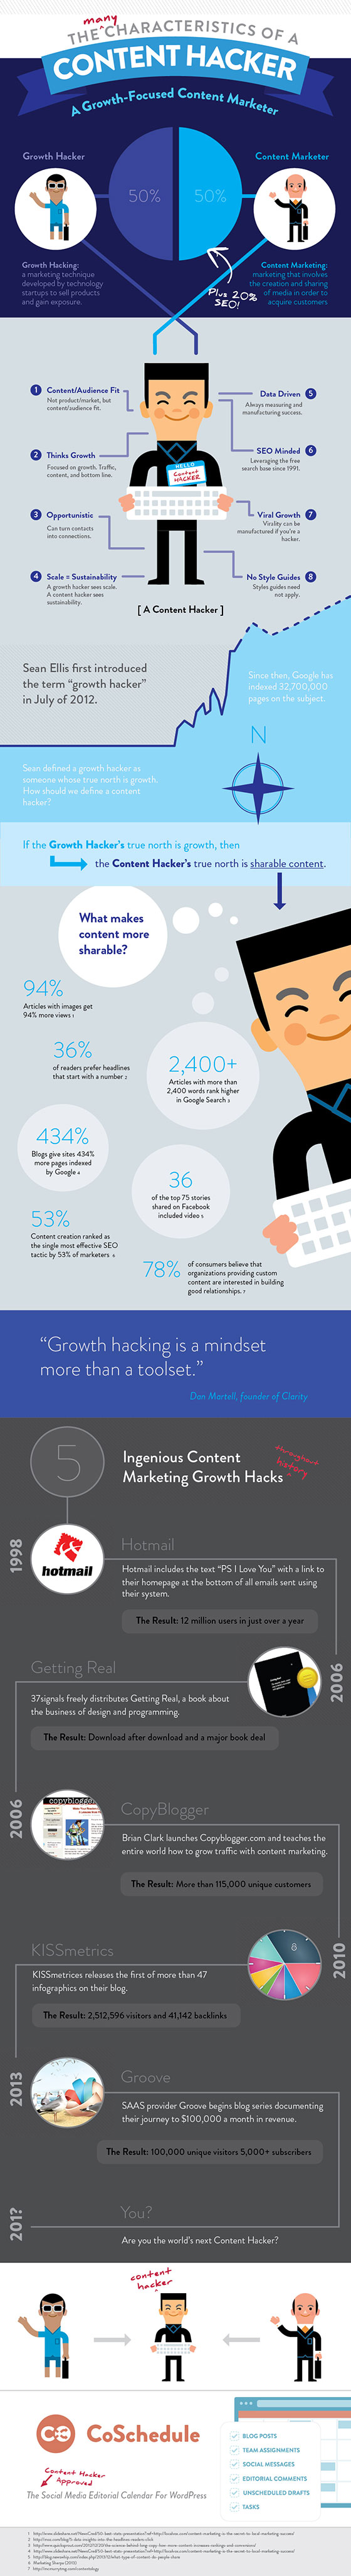 Characteristics Of A Content Marketing Growth Hacker infographic